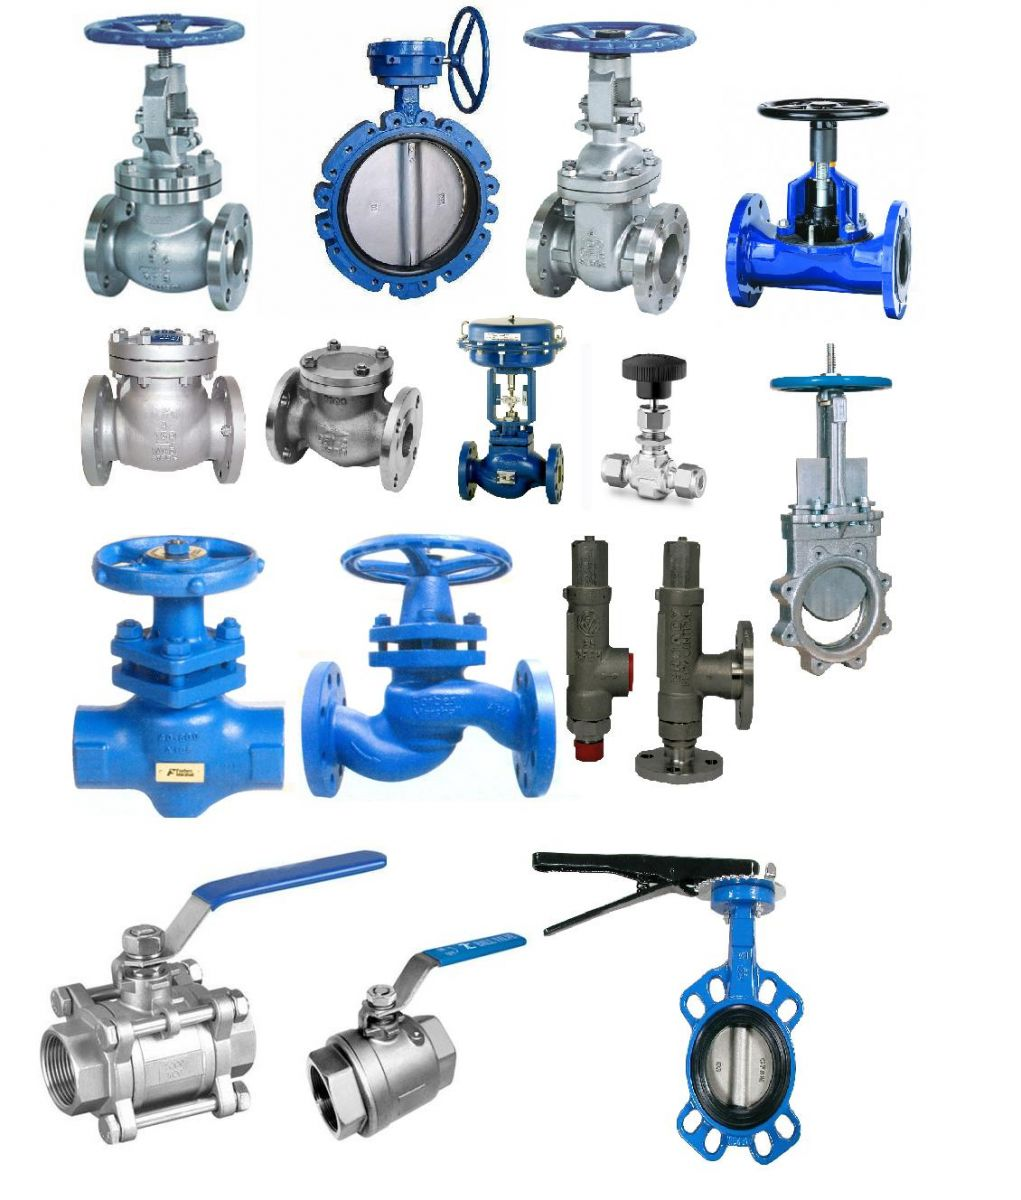 Three Policies Boost the Development of Valve Industry